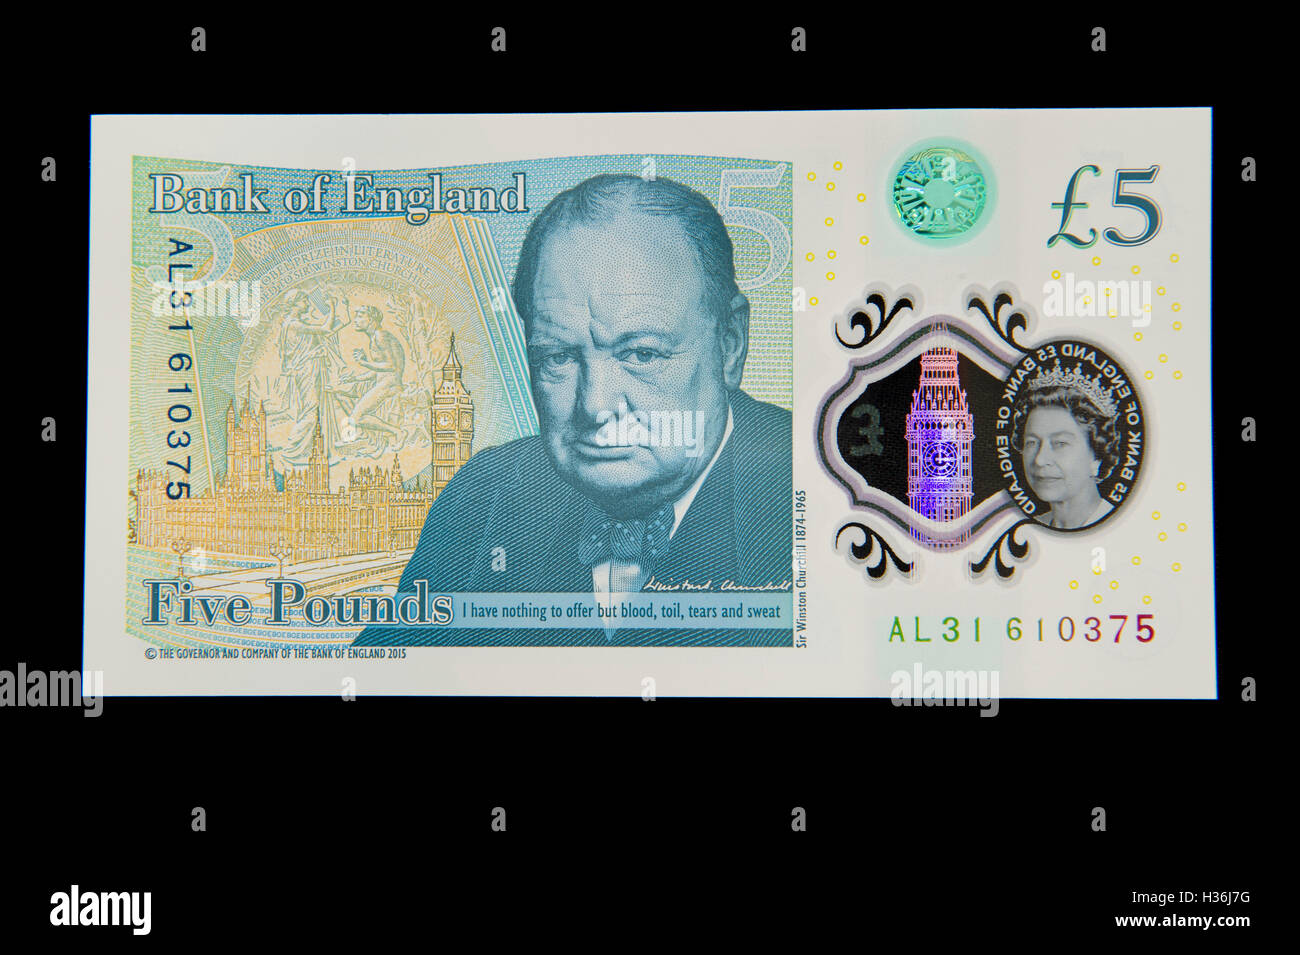 Back view of the new plastic (polymer) five pound note on a black background - Stock Image